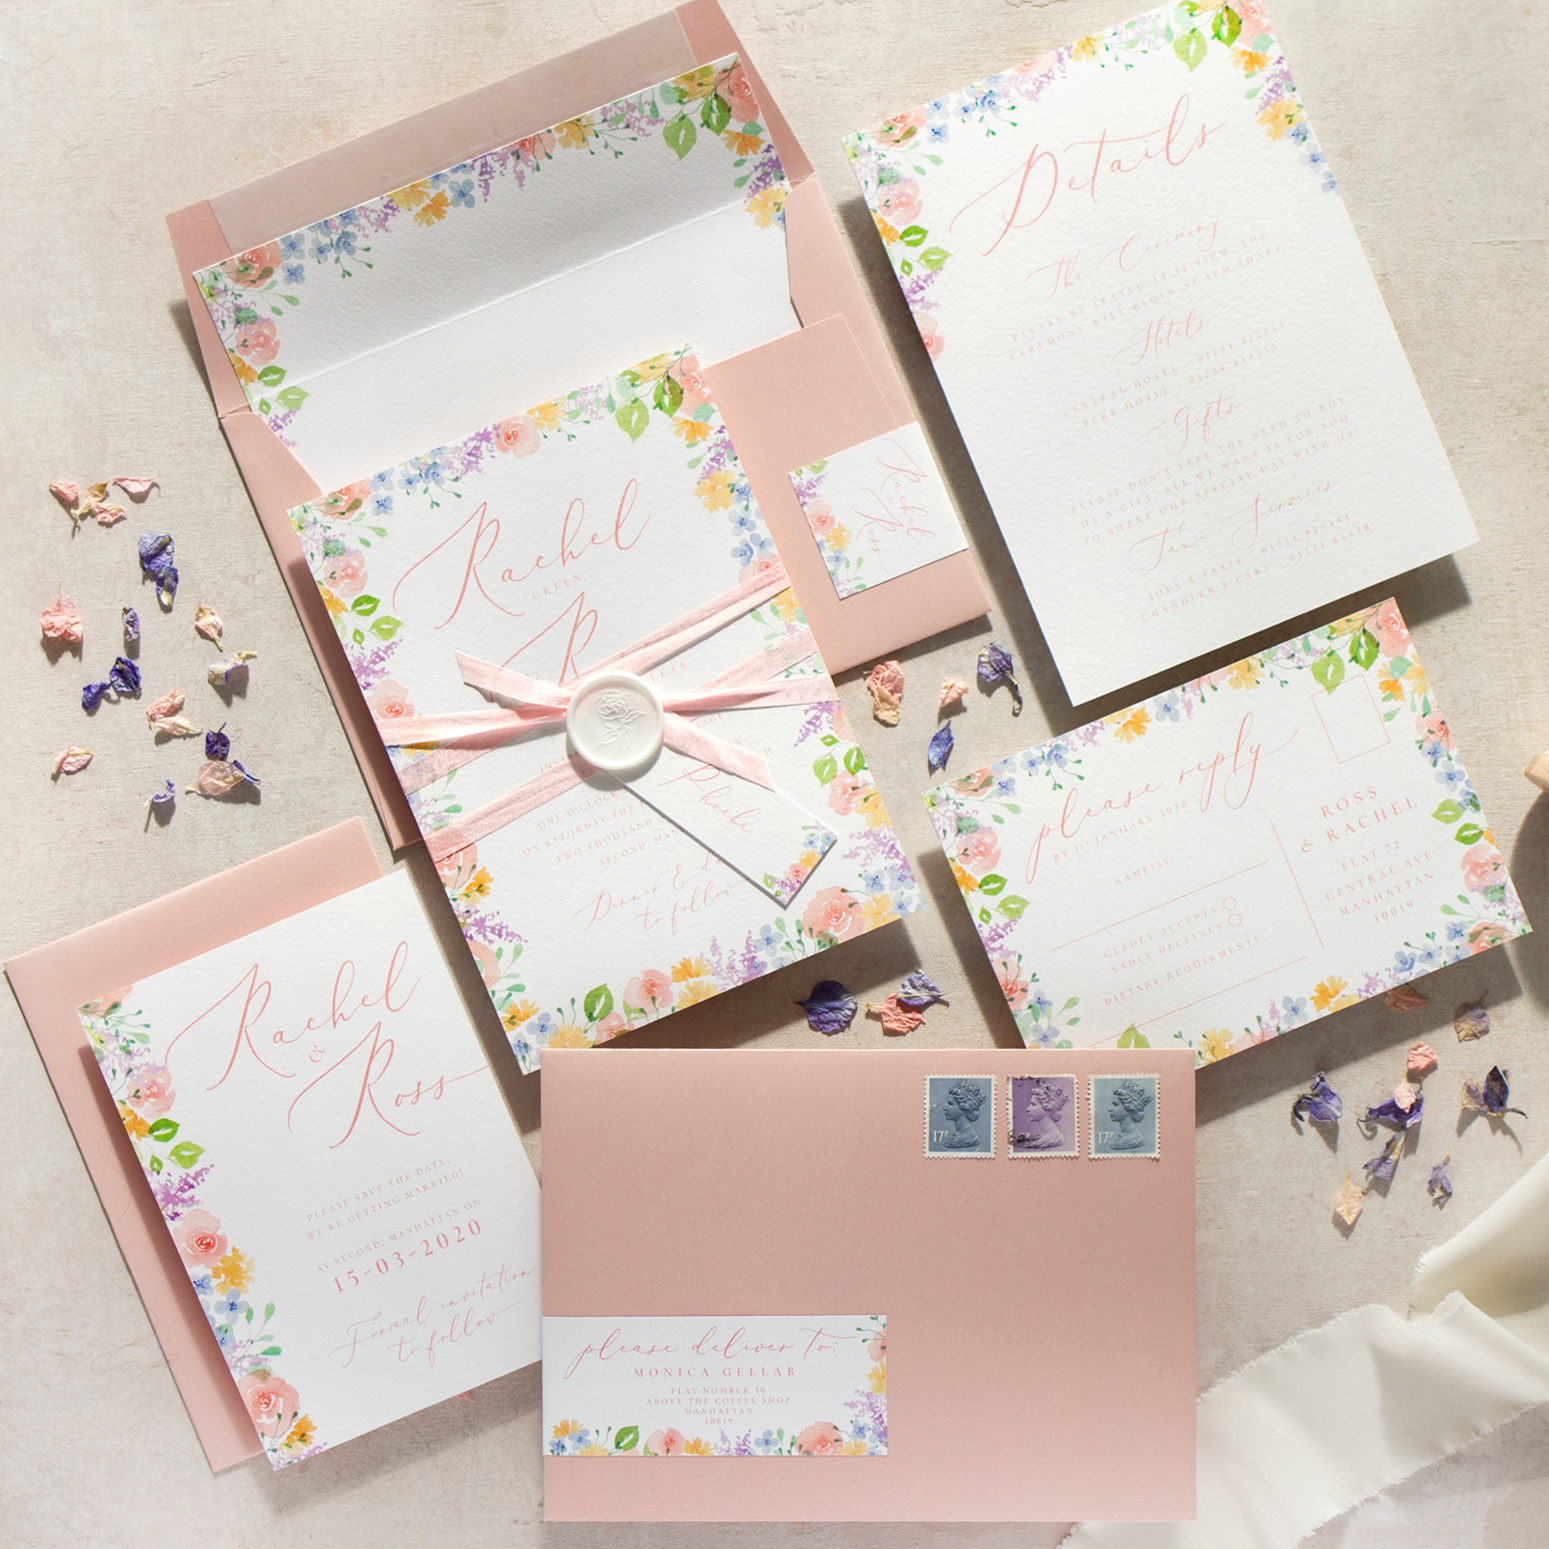 Spring Heath Luxe Wedding Stationery with Hand Painted Watercolour Flowers and Blush Pink Envelopes - www.pinglepie.com.jpg